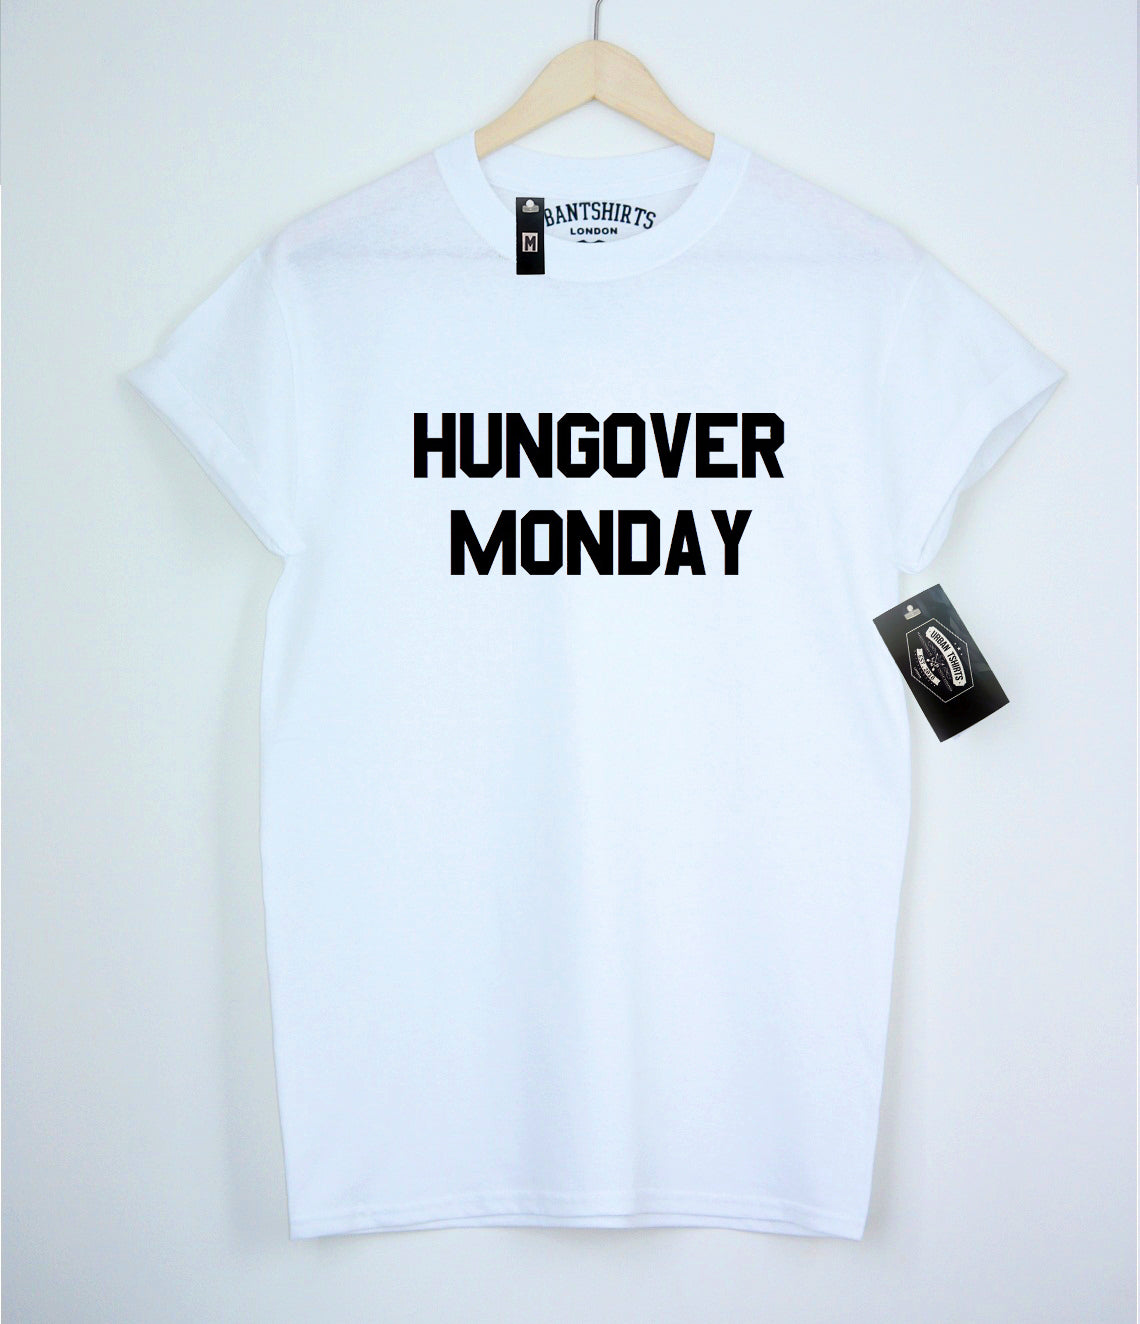 Hungover Monday T-shirt - Urbantshirts.co.uk